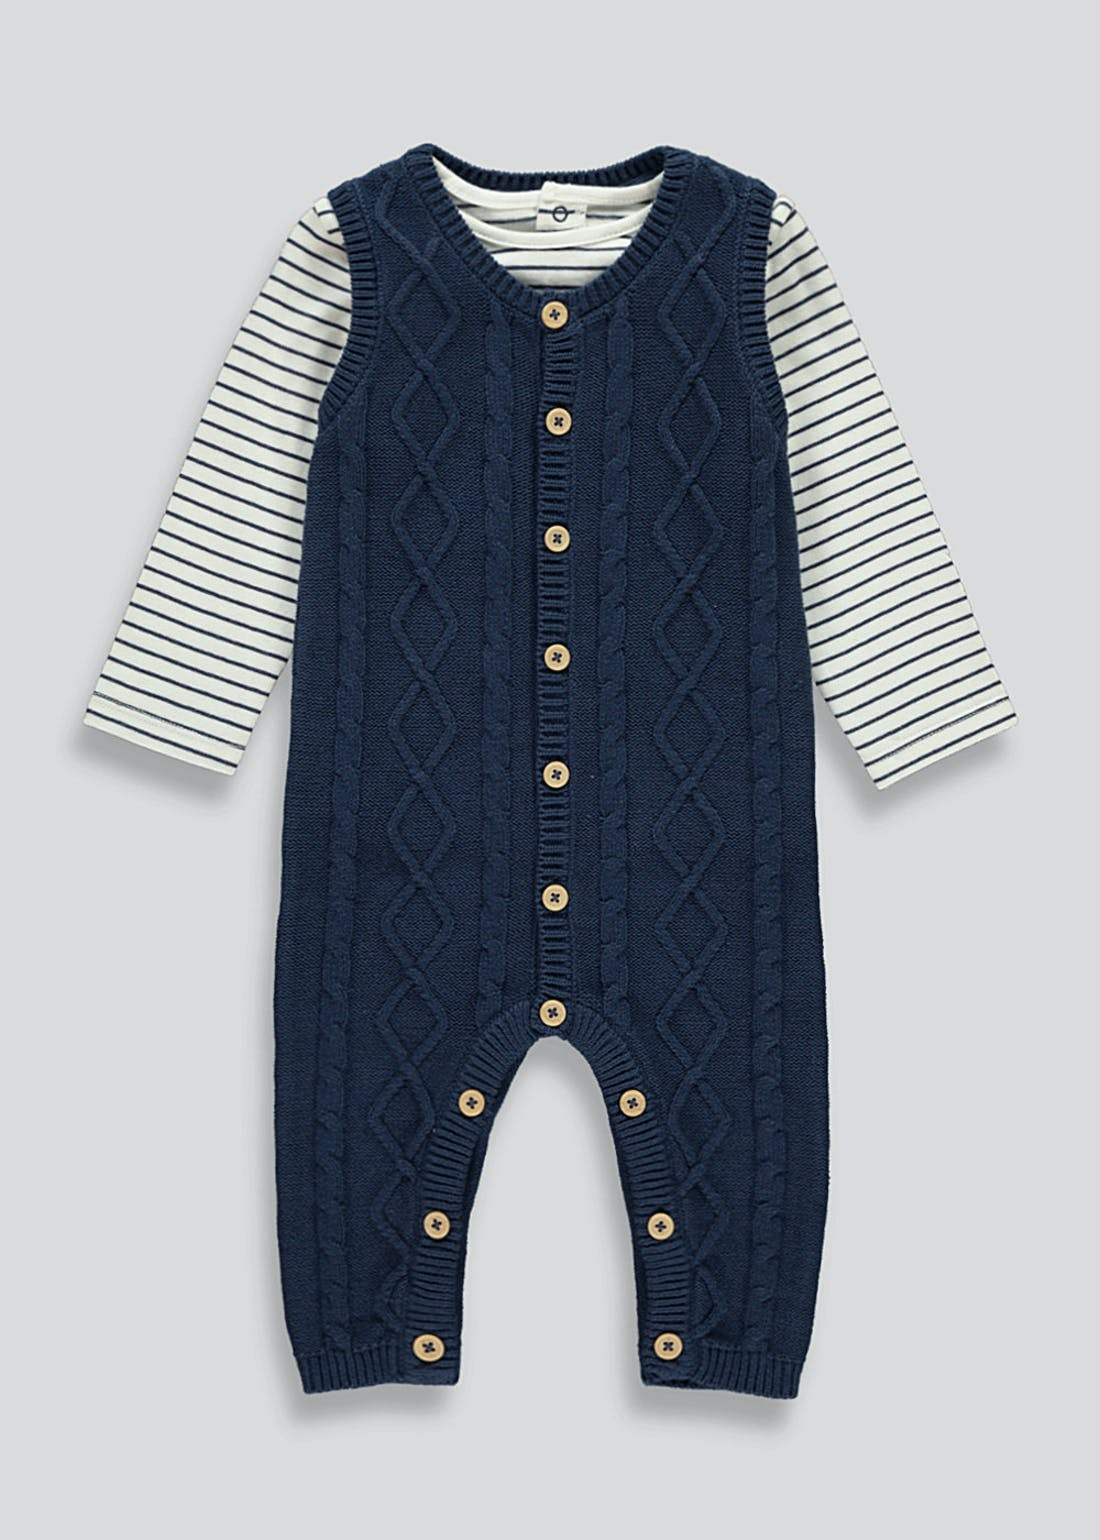 Unisex Knitted Romper And T-Shirt Set (Tiny Baby-18mths)